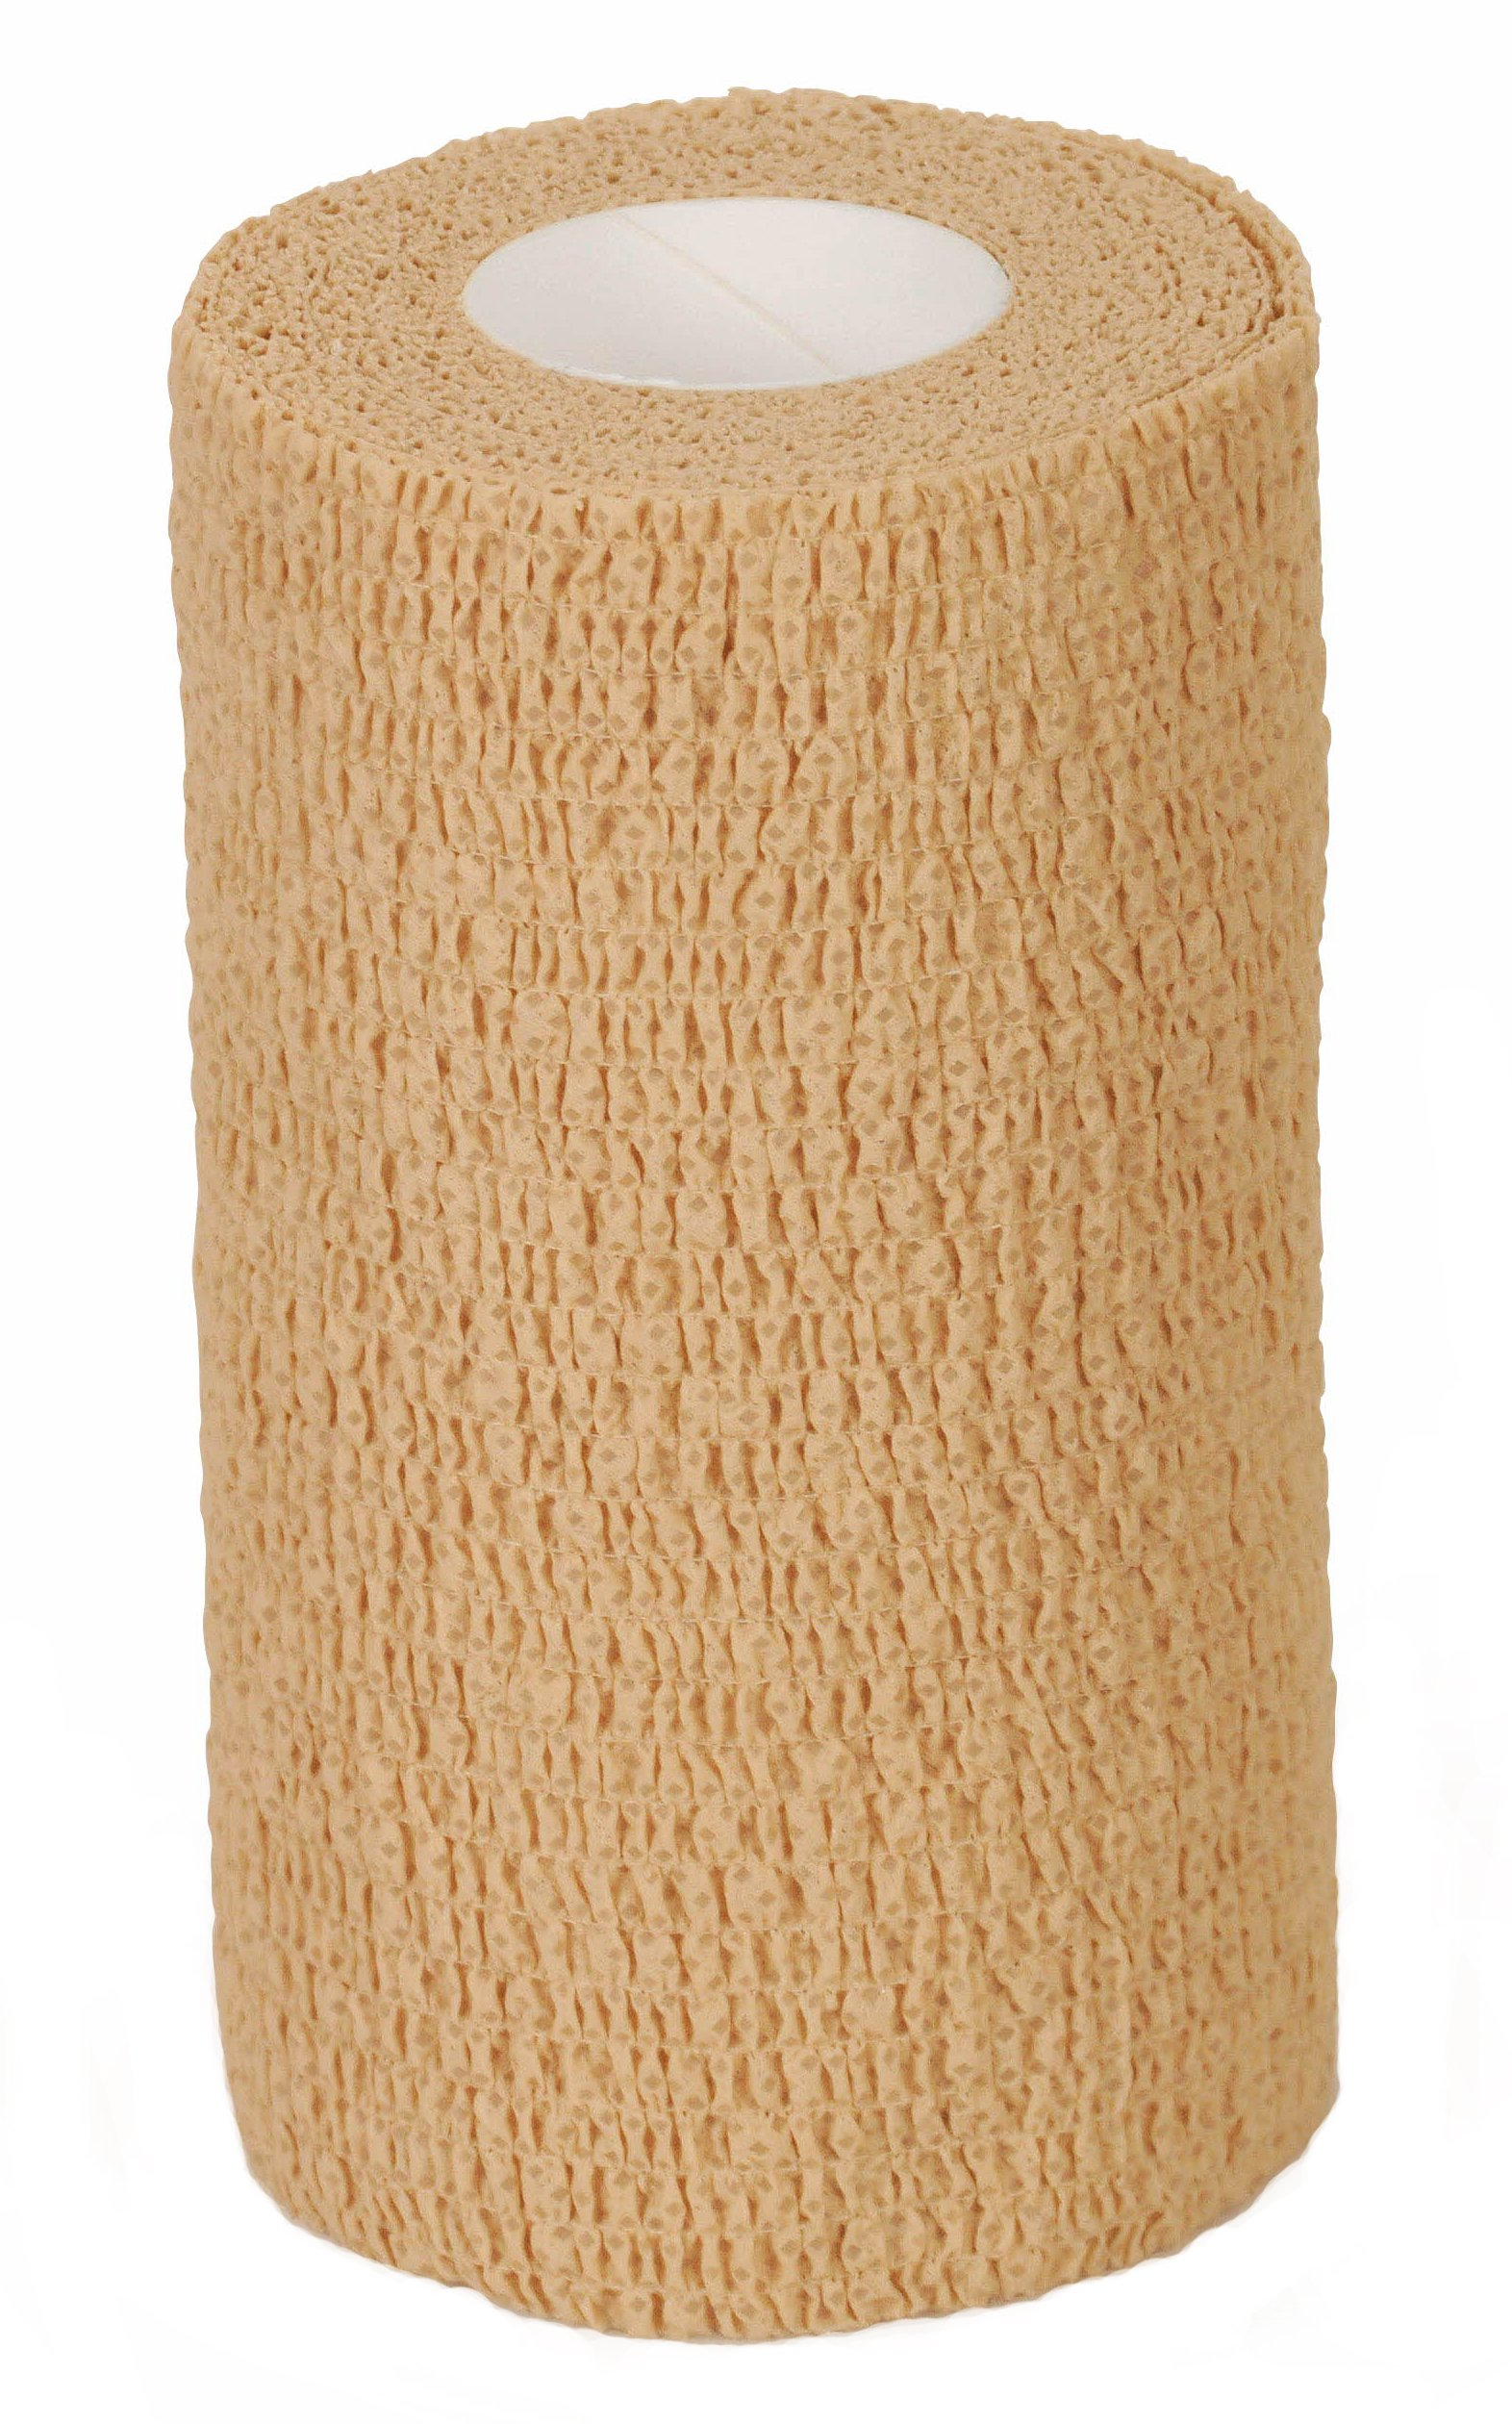 Medline Caring Self-Adherent Cohesive Wrap Bandage with Latex, Non-Sterile, 6'' x 5 yd, Tan (Case of 12)